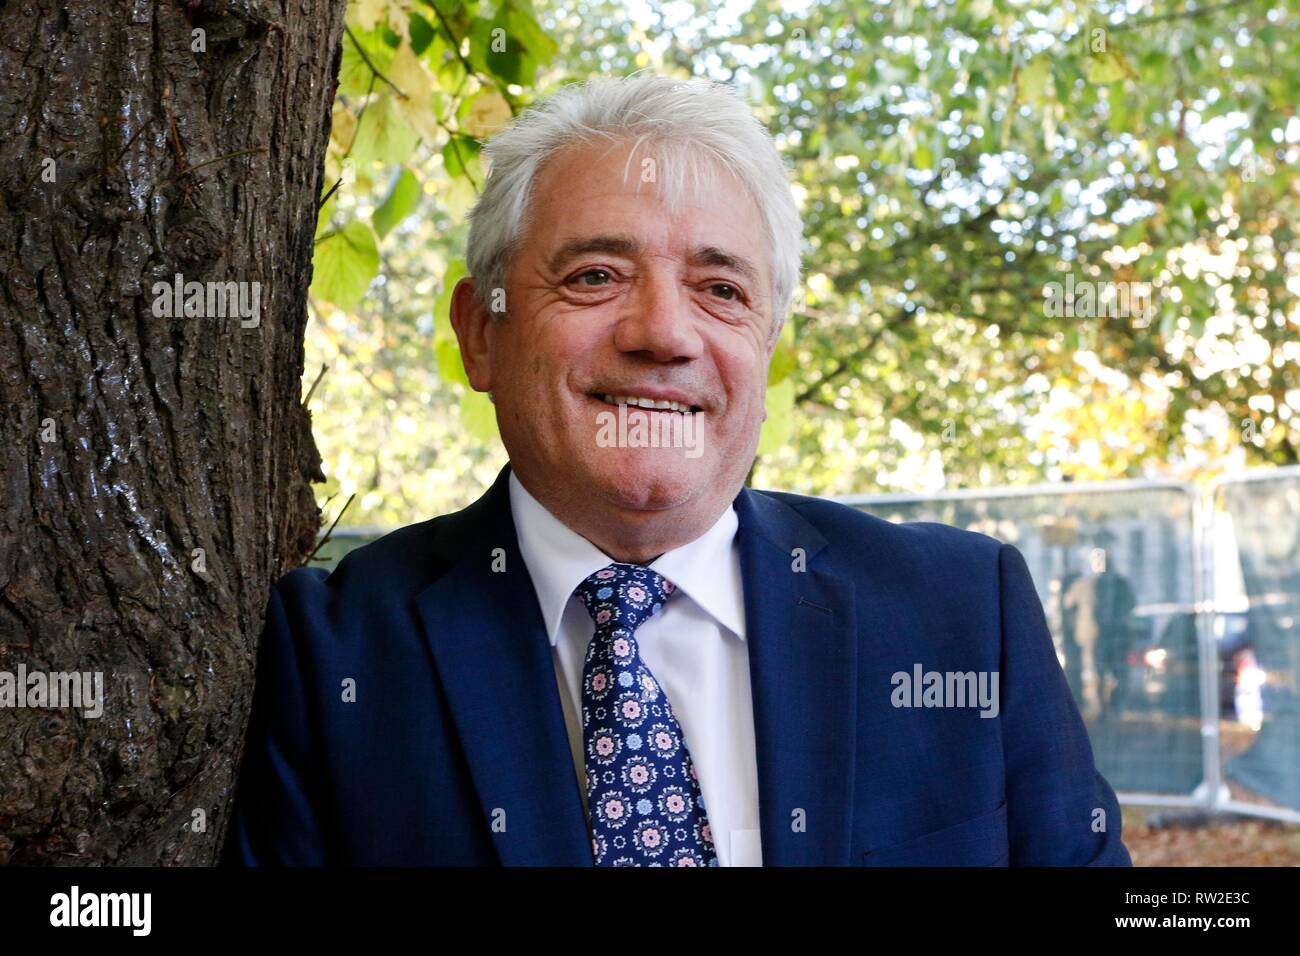 Kevin Keegan, at Cheltenham Literature Festival on Tuesday, to talk about his new book. 9 October 2018 Picture by Andrew Higgins - Thousand Word Media - Stock Image